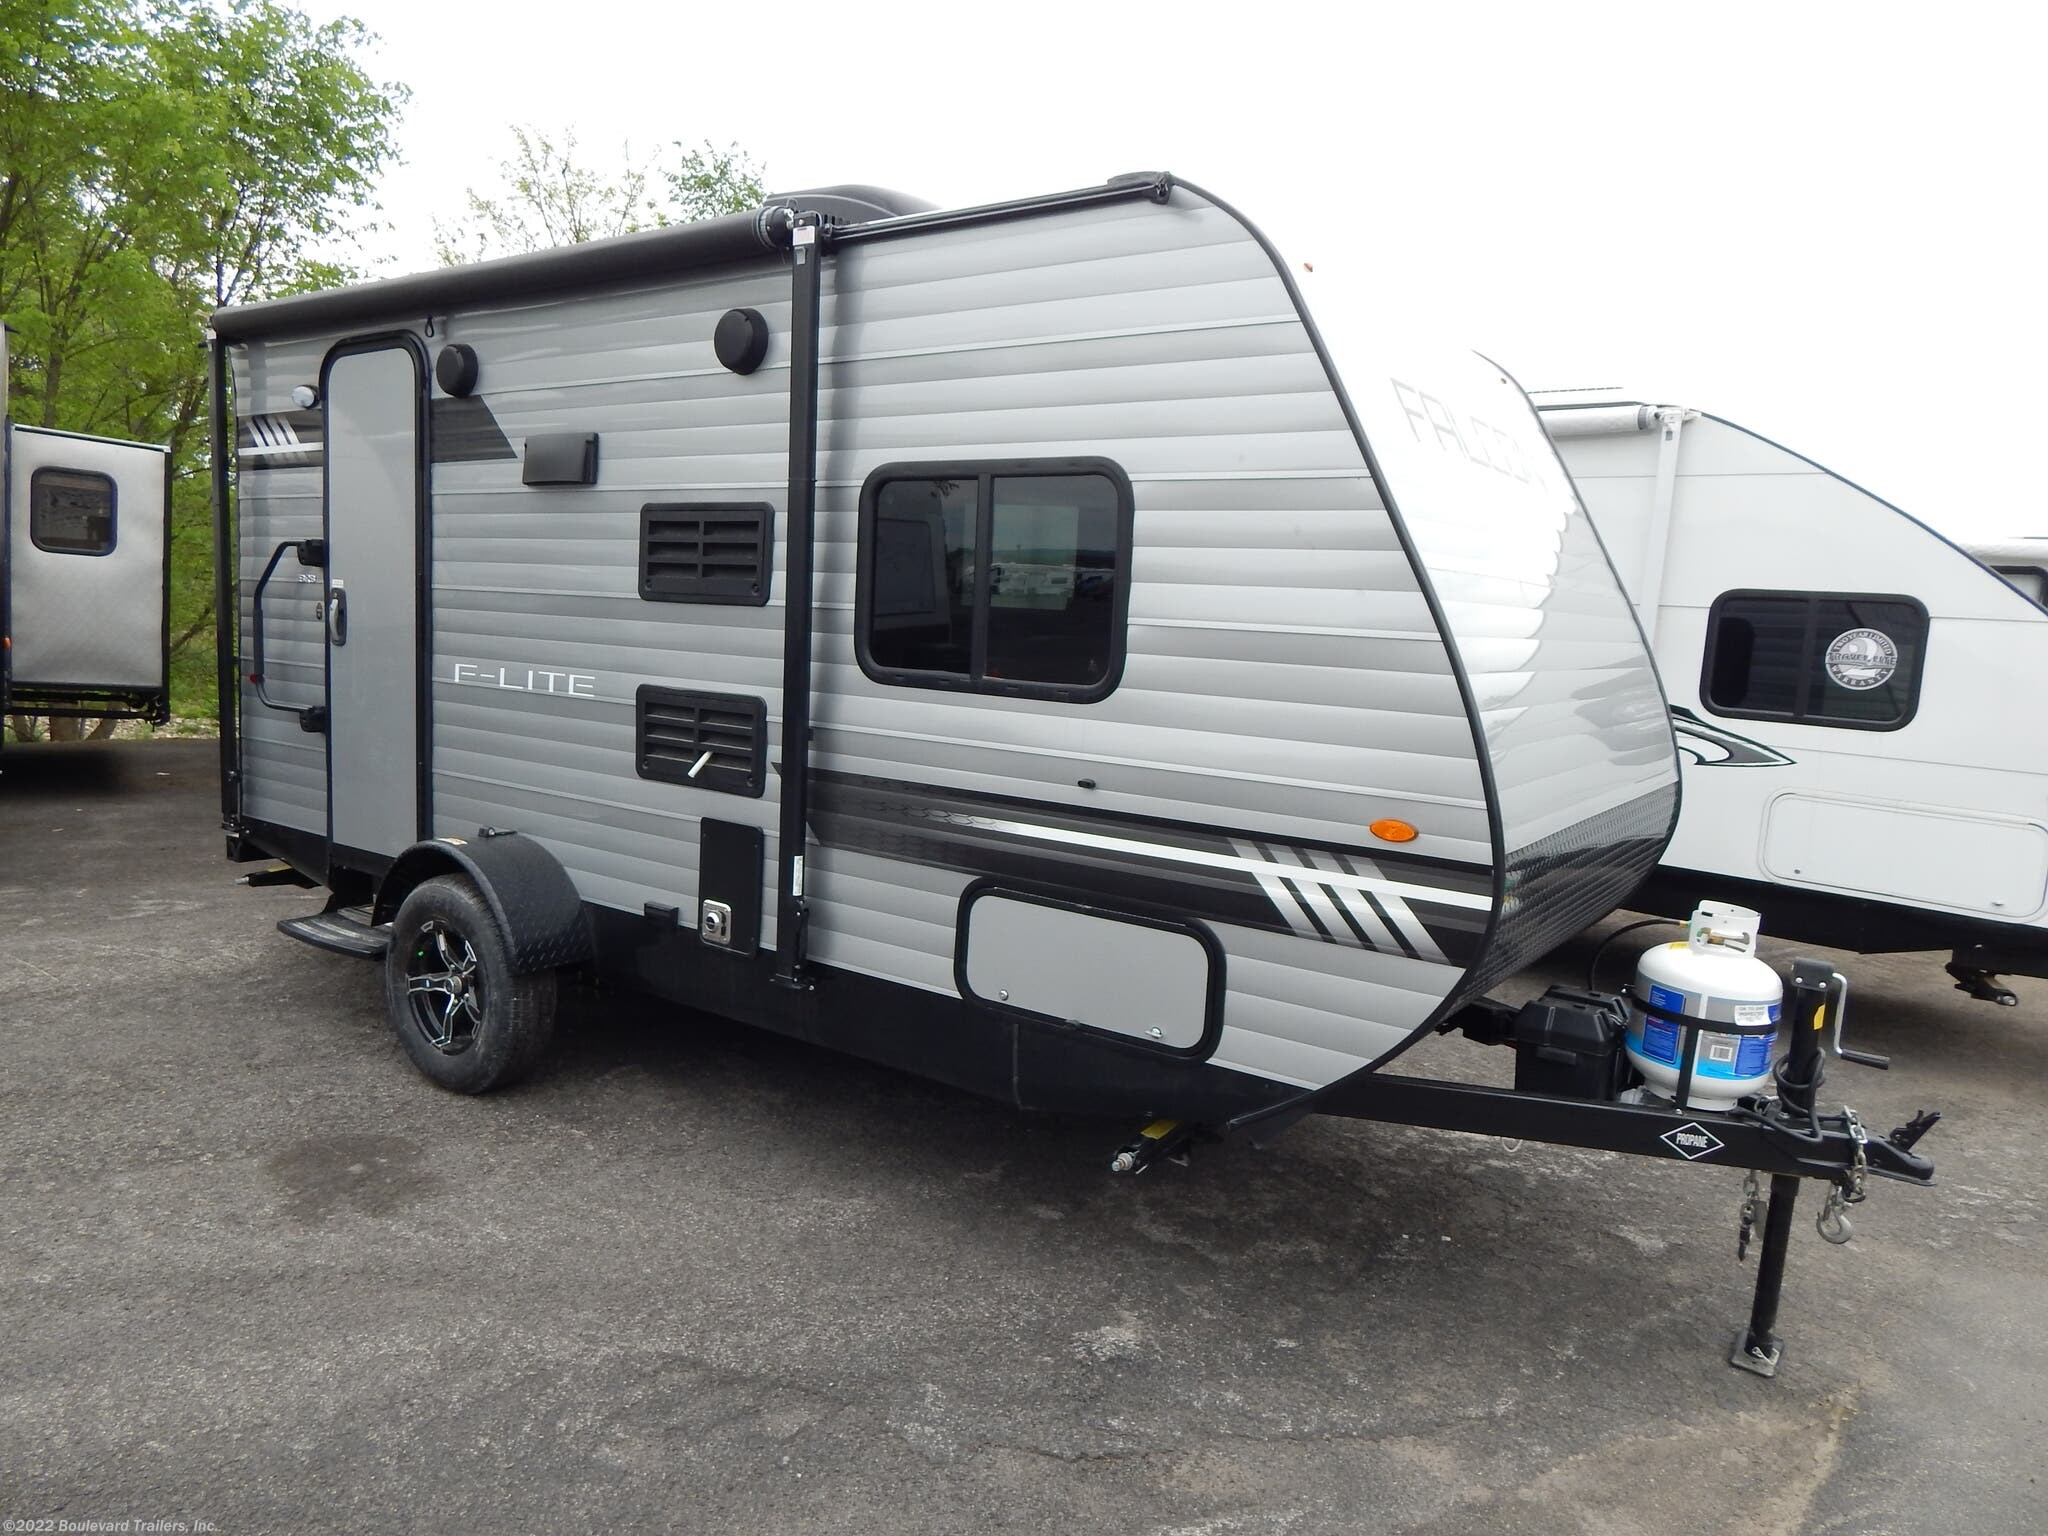 2020 Travel Lite RV Falcon 18RB for Sale in Whitesboro, NY 13492 | 2